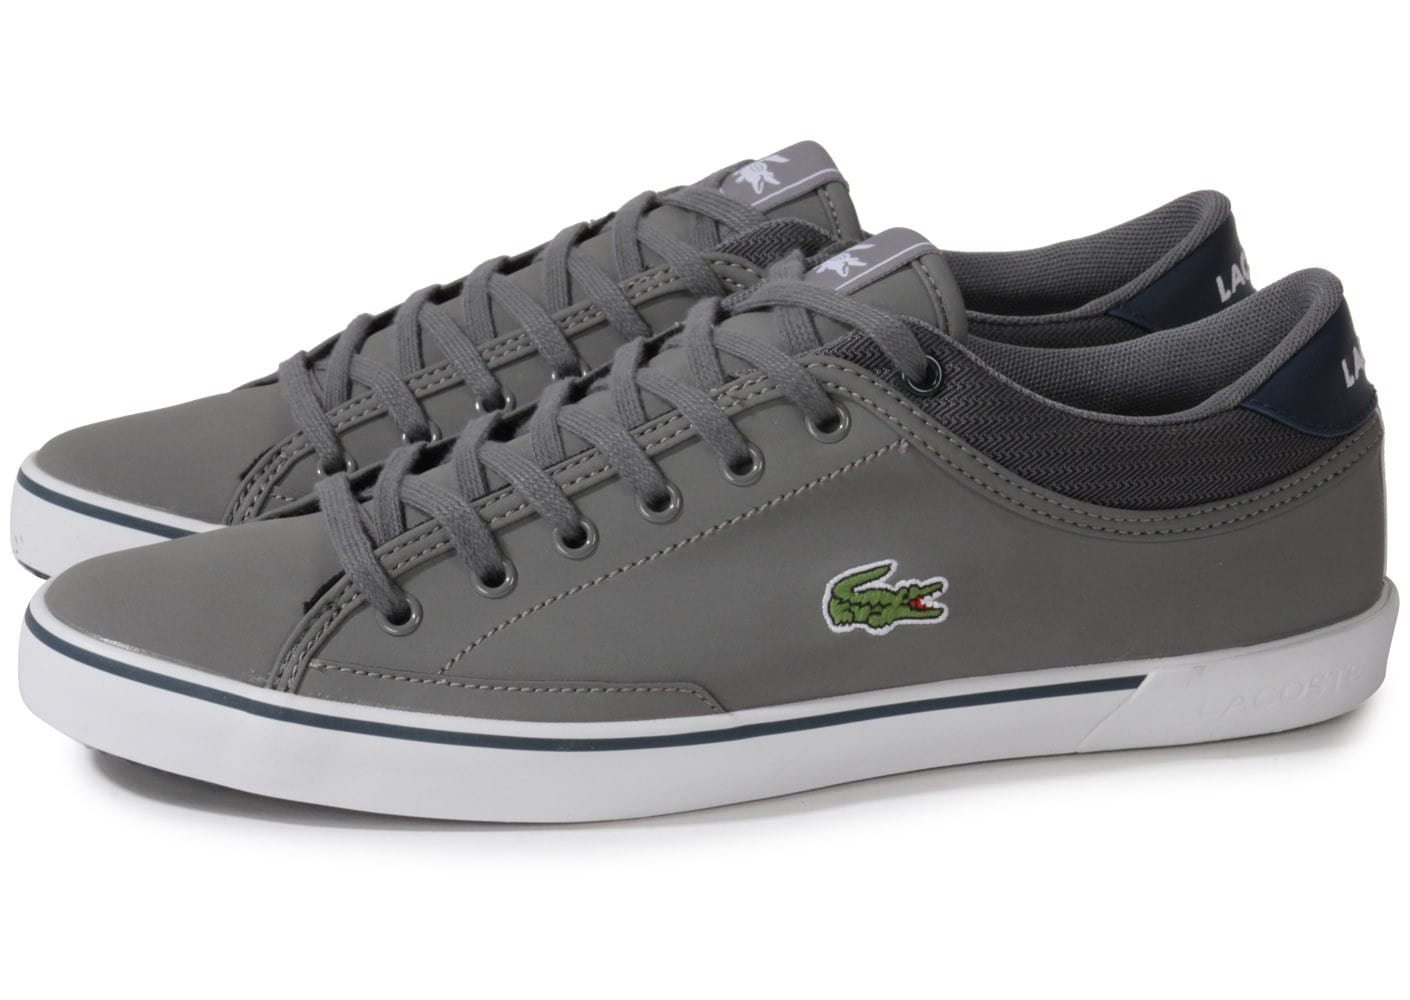 chaussures lacoste bebe femme chaussure lacoste homme mocassin achat chaussure lacoste femme. Black Bedroom Furniture Sets. Home Design Ideas